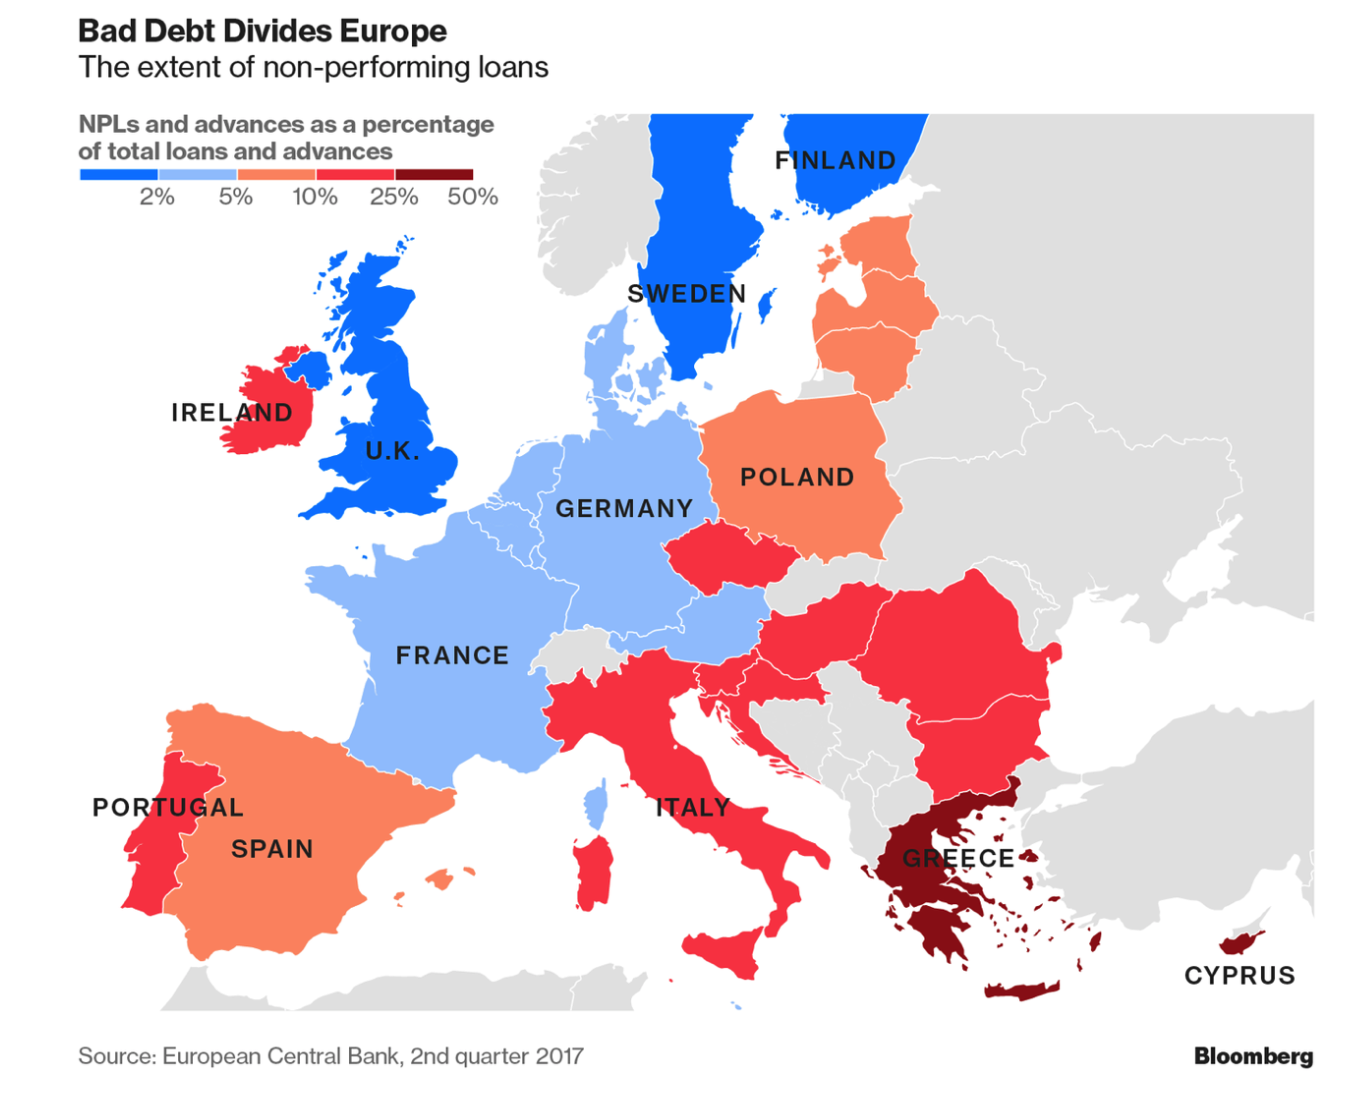 Three Stooges Map Of Europe.Bank Bail In Risk In European Countries Seen In 5 Key Charts